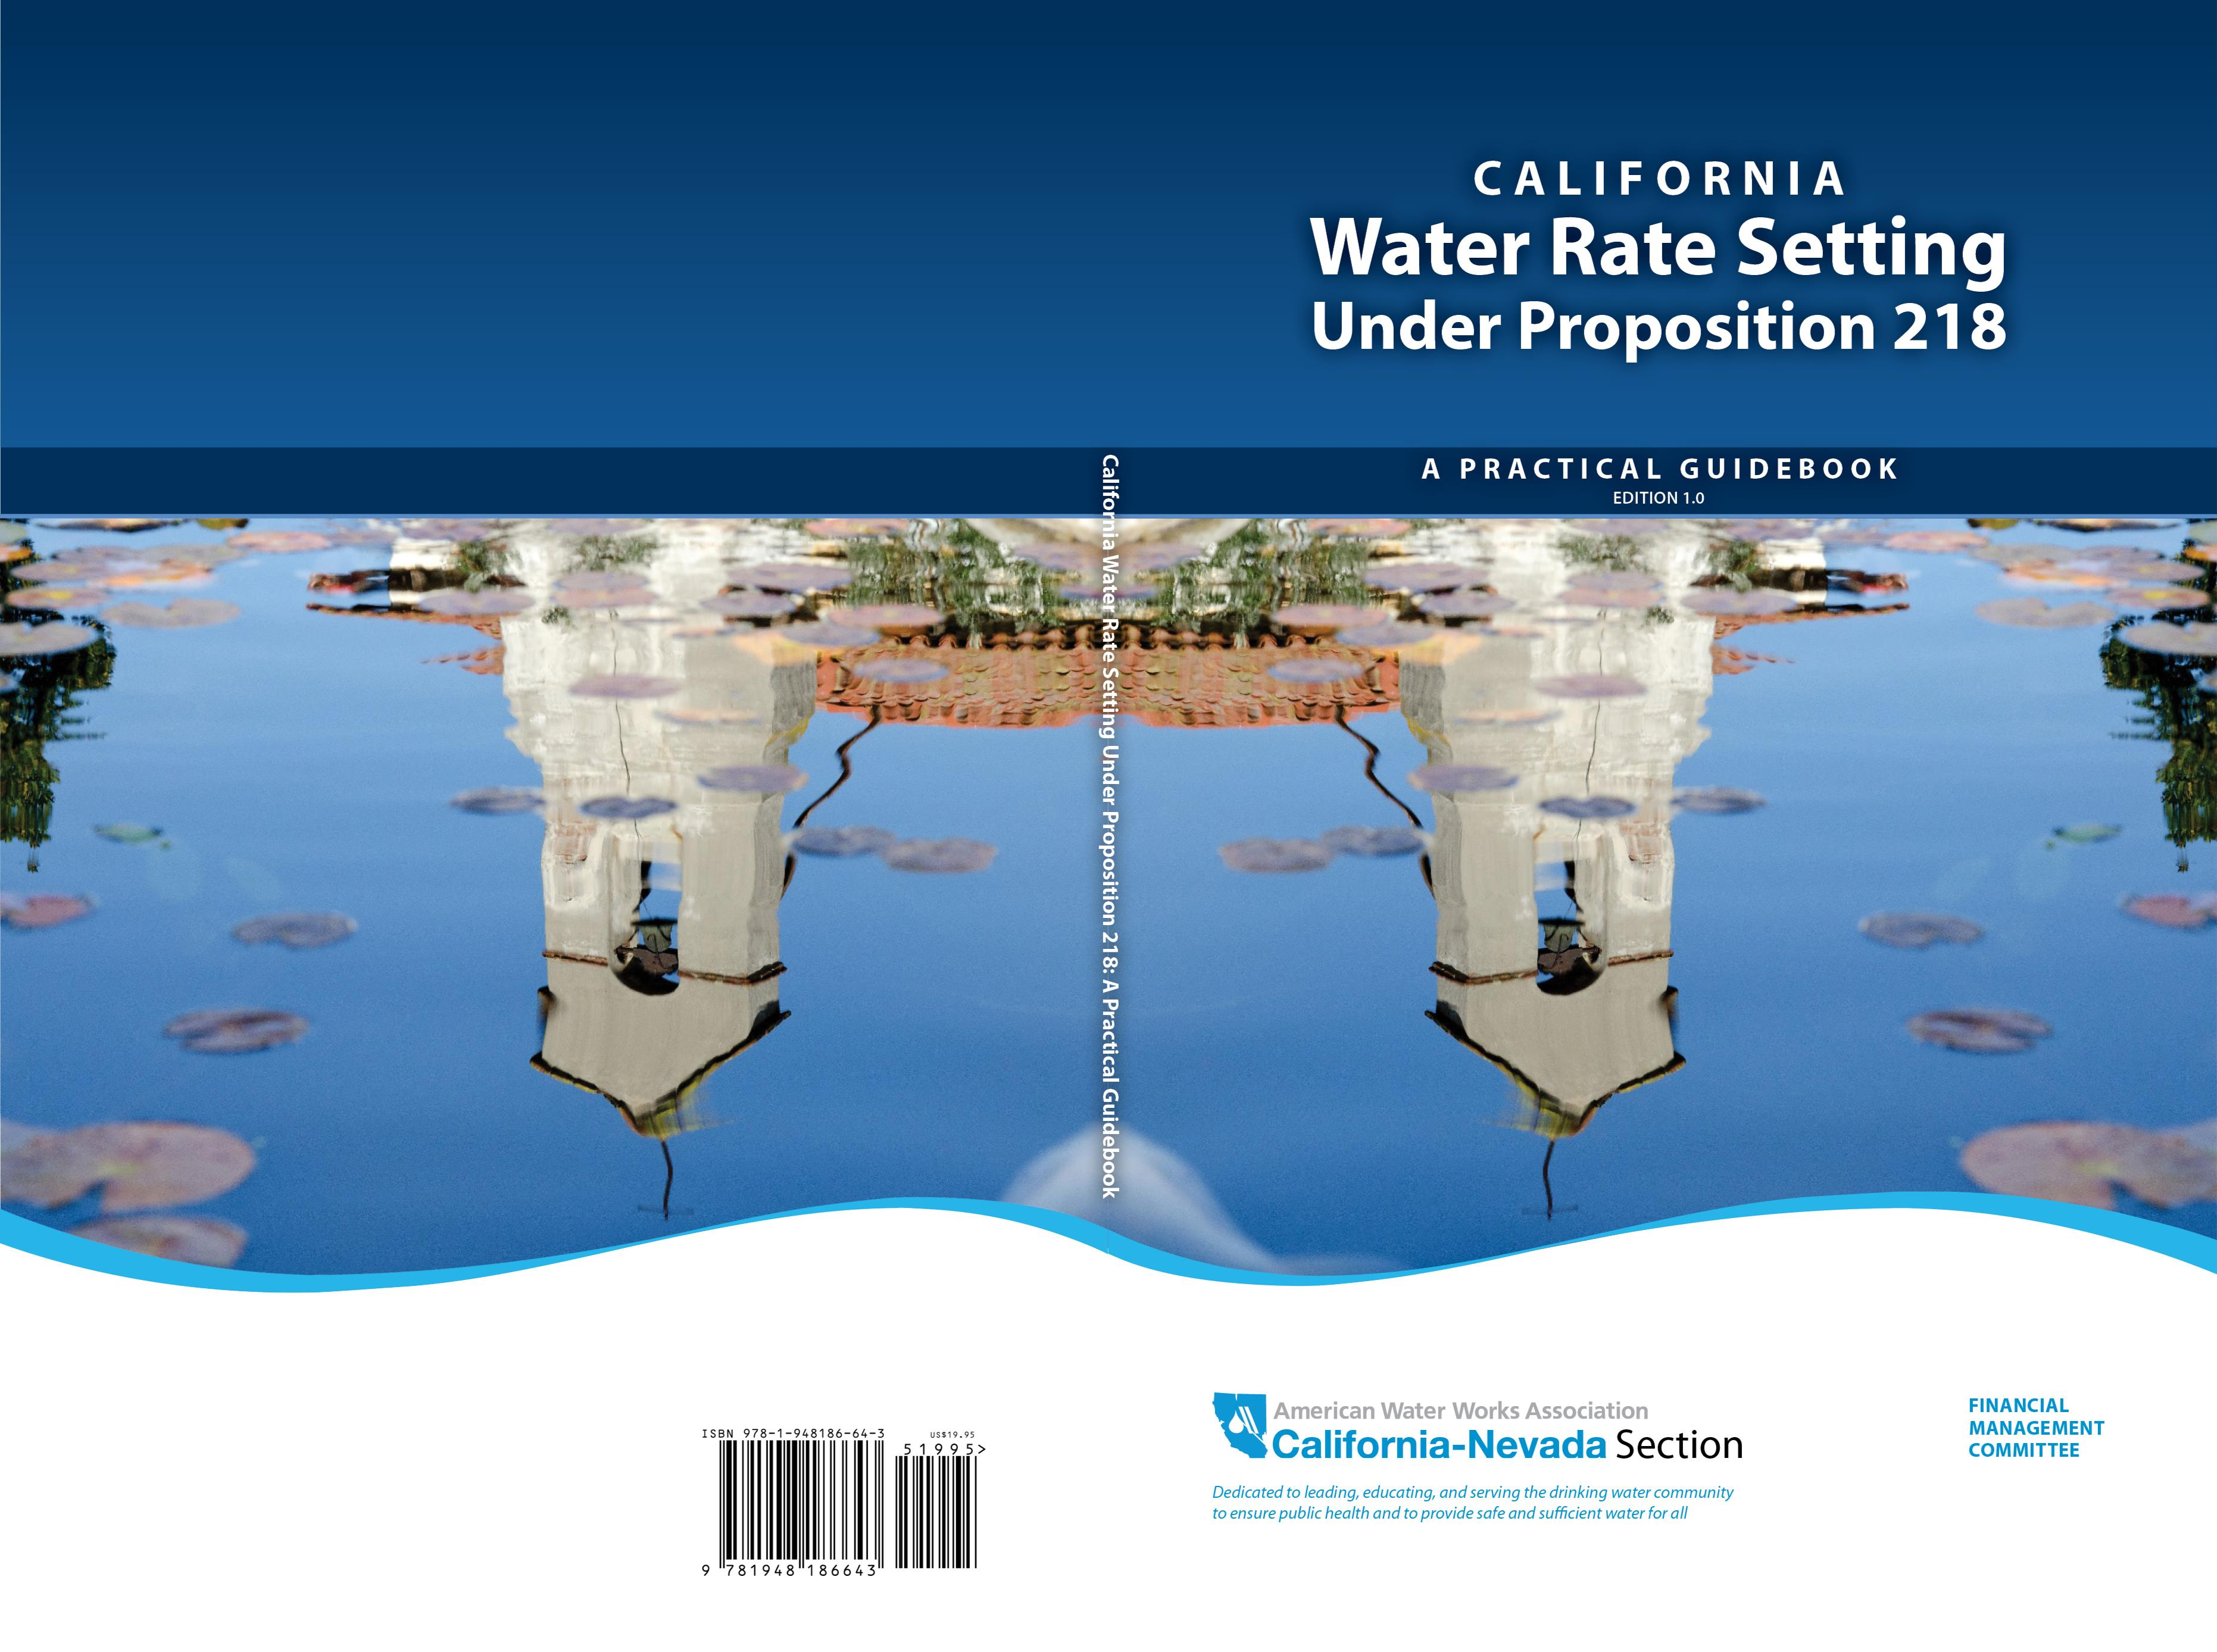 California Water Rate Setting Under Proposition 218: A Practical Guidebook cover image